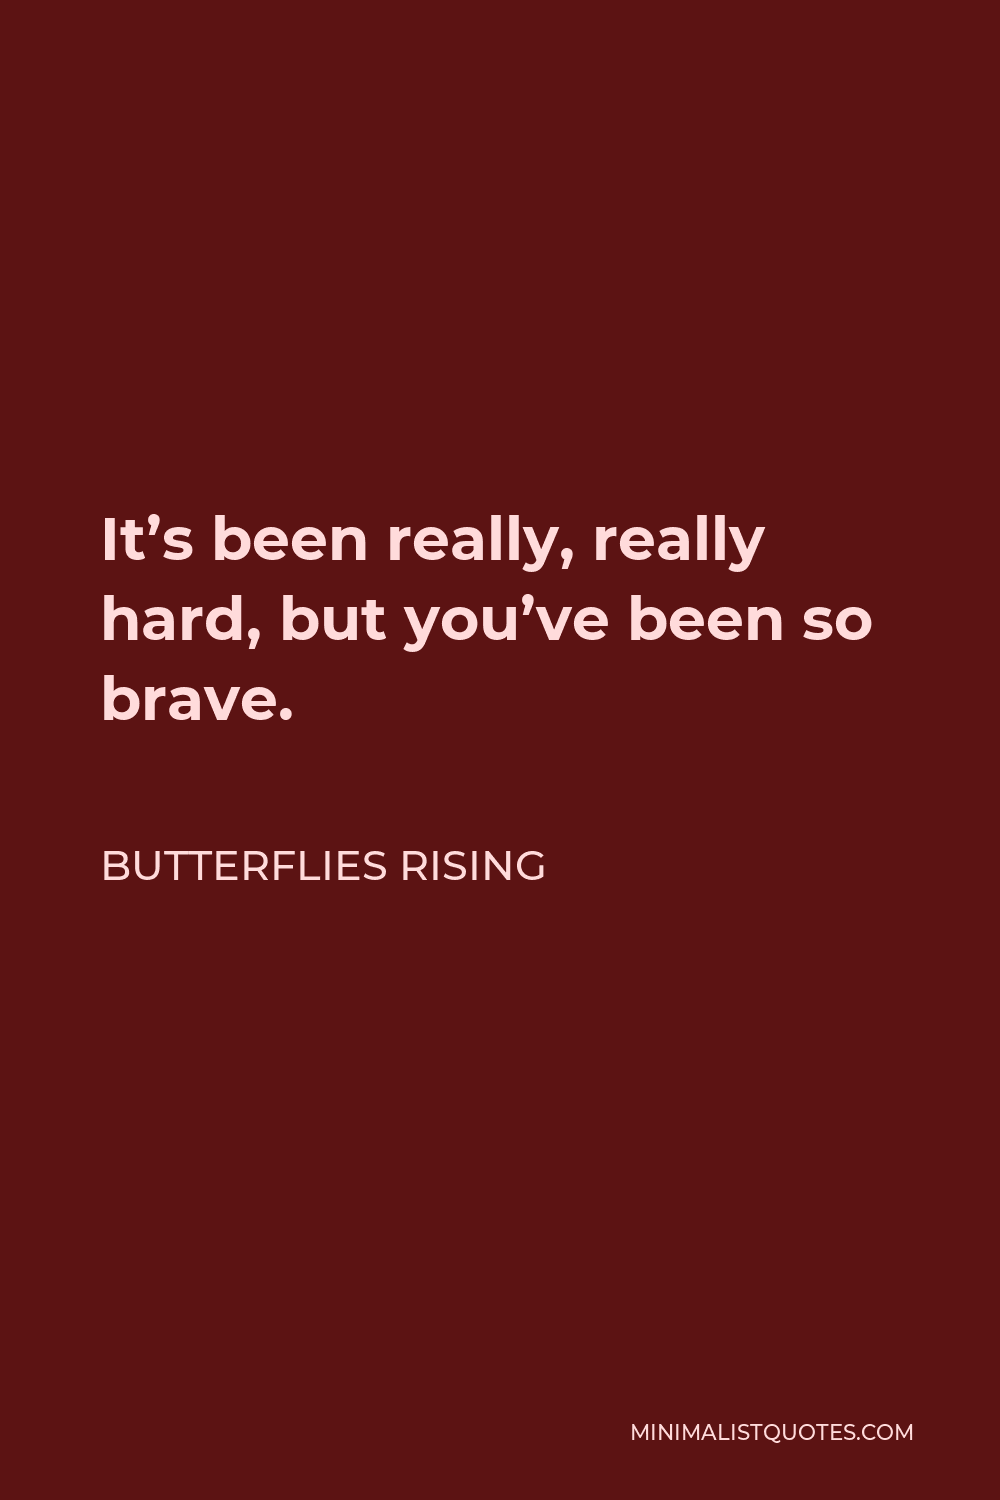 Butterflies Rising Quote - Its been really, really hard, but you've been so brave.